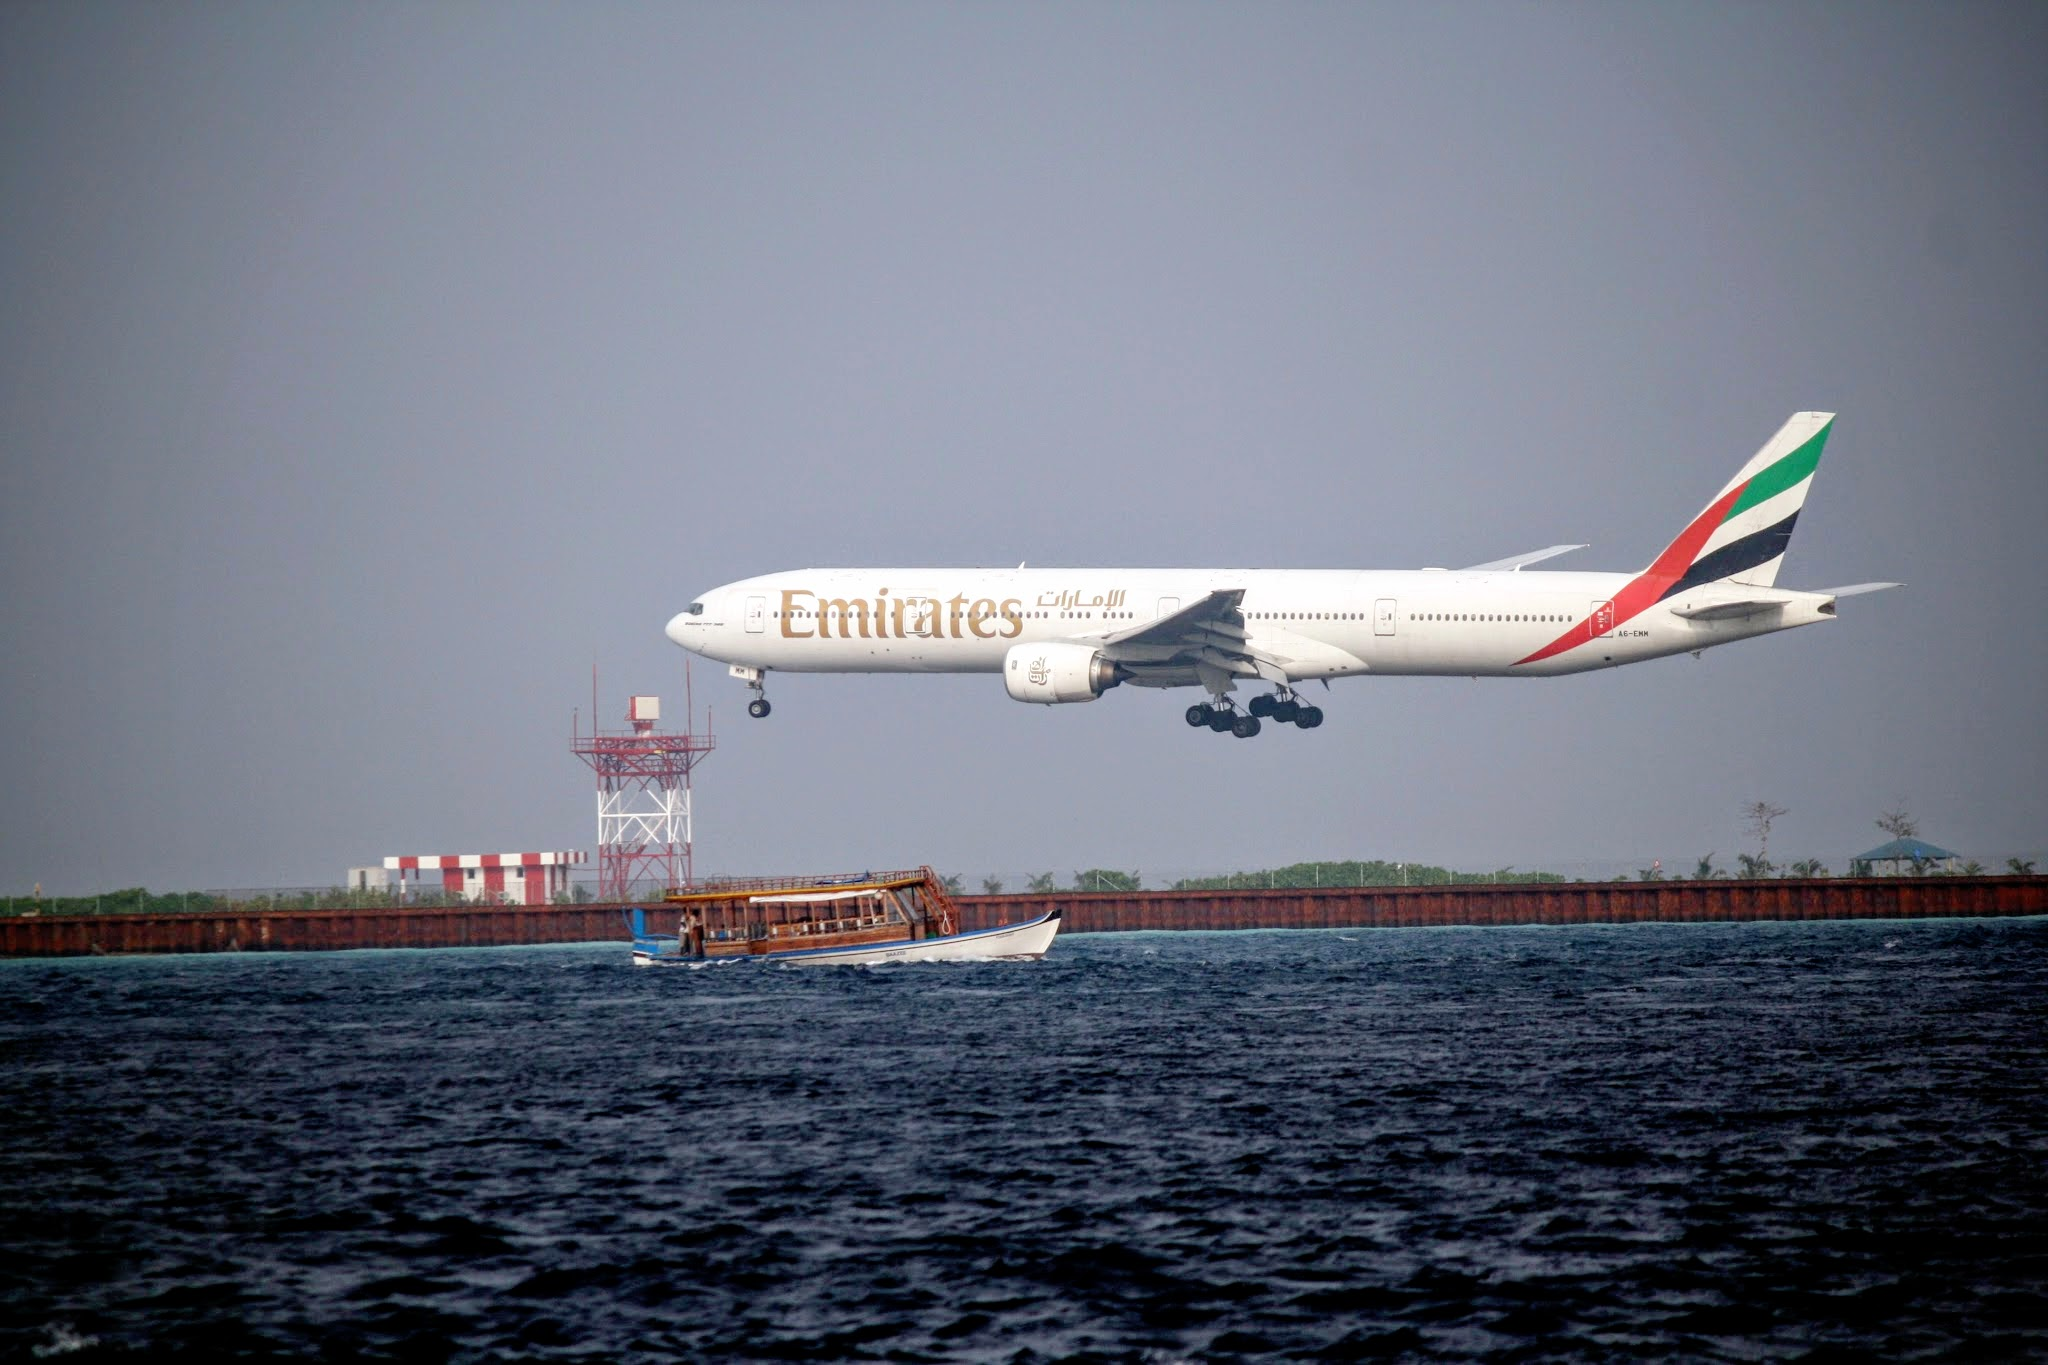 Emirates flight landing at Ibrahim Nasir International Airport